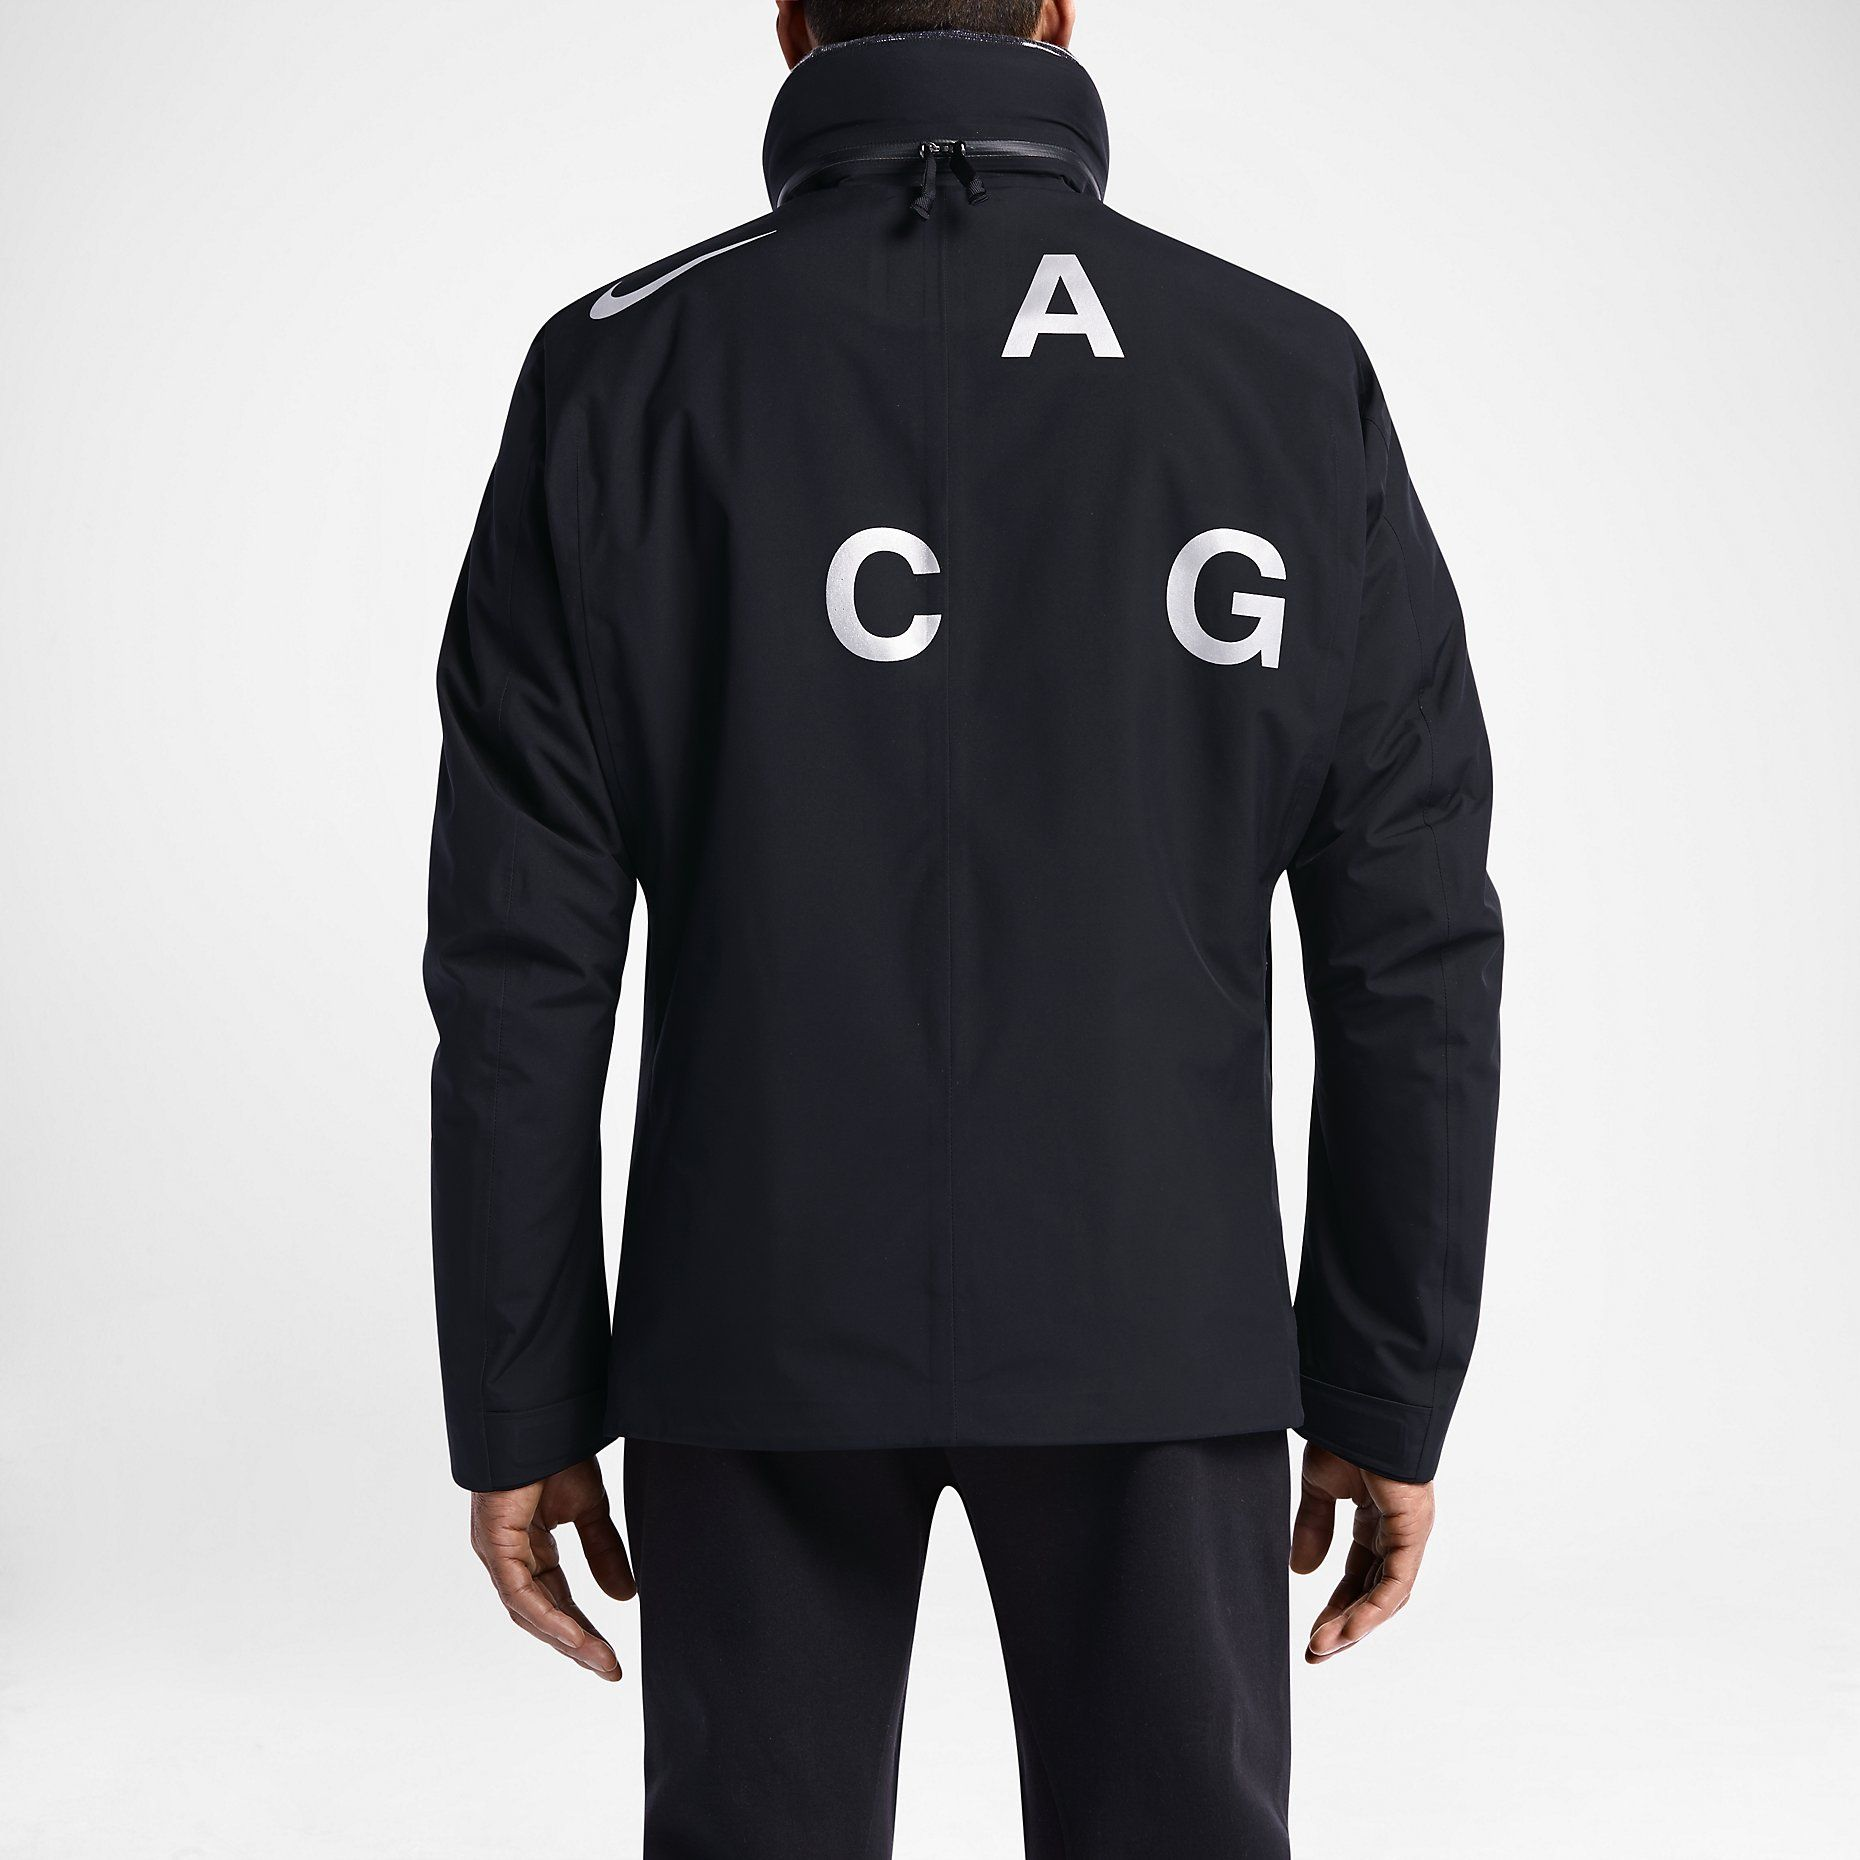 d5a524a7dd46 NikeLab ACG 2-In-1 Men s Jacket. Nike Store